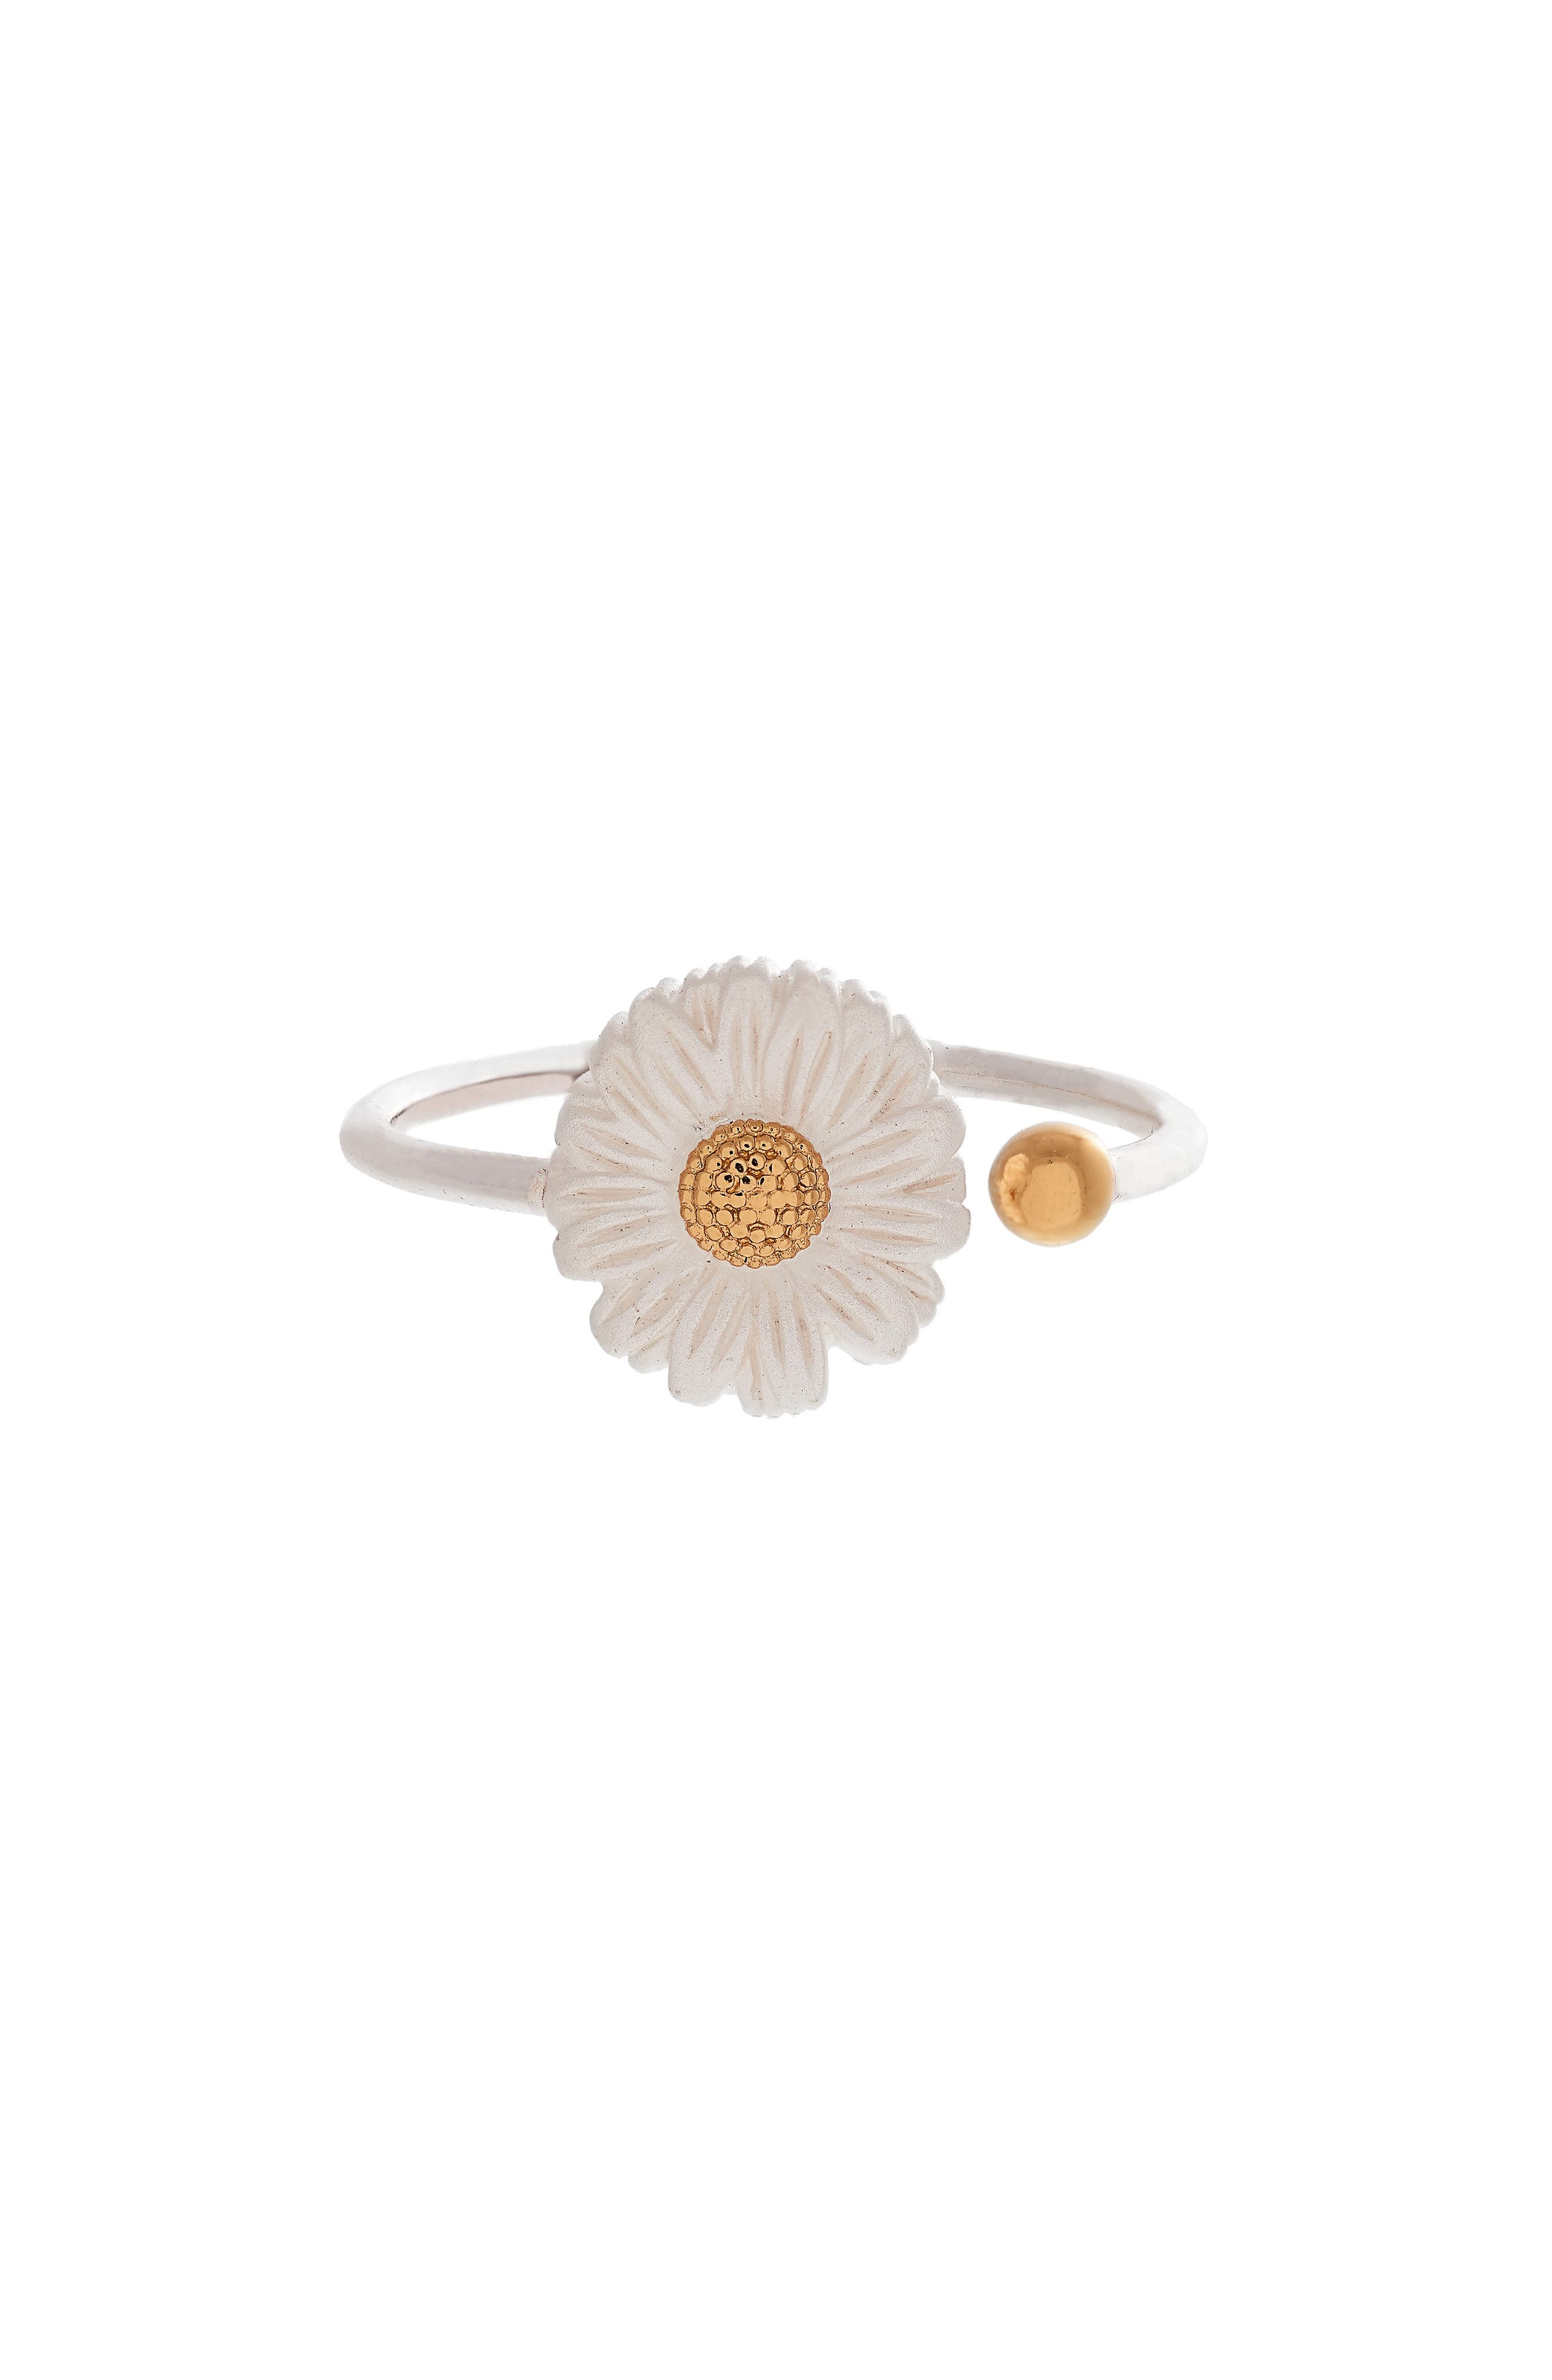 Daisy Ring,                         Main,                         color, Silver/ Gold